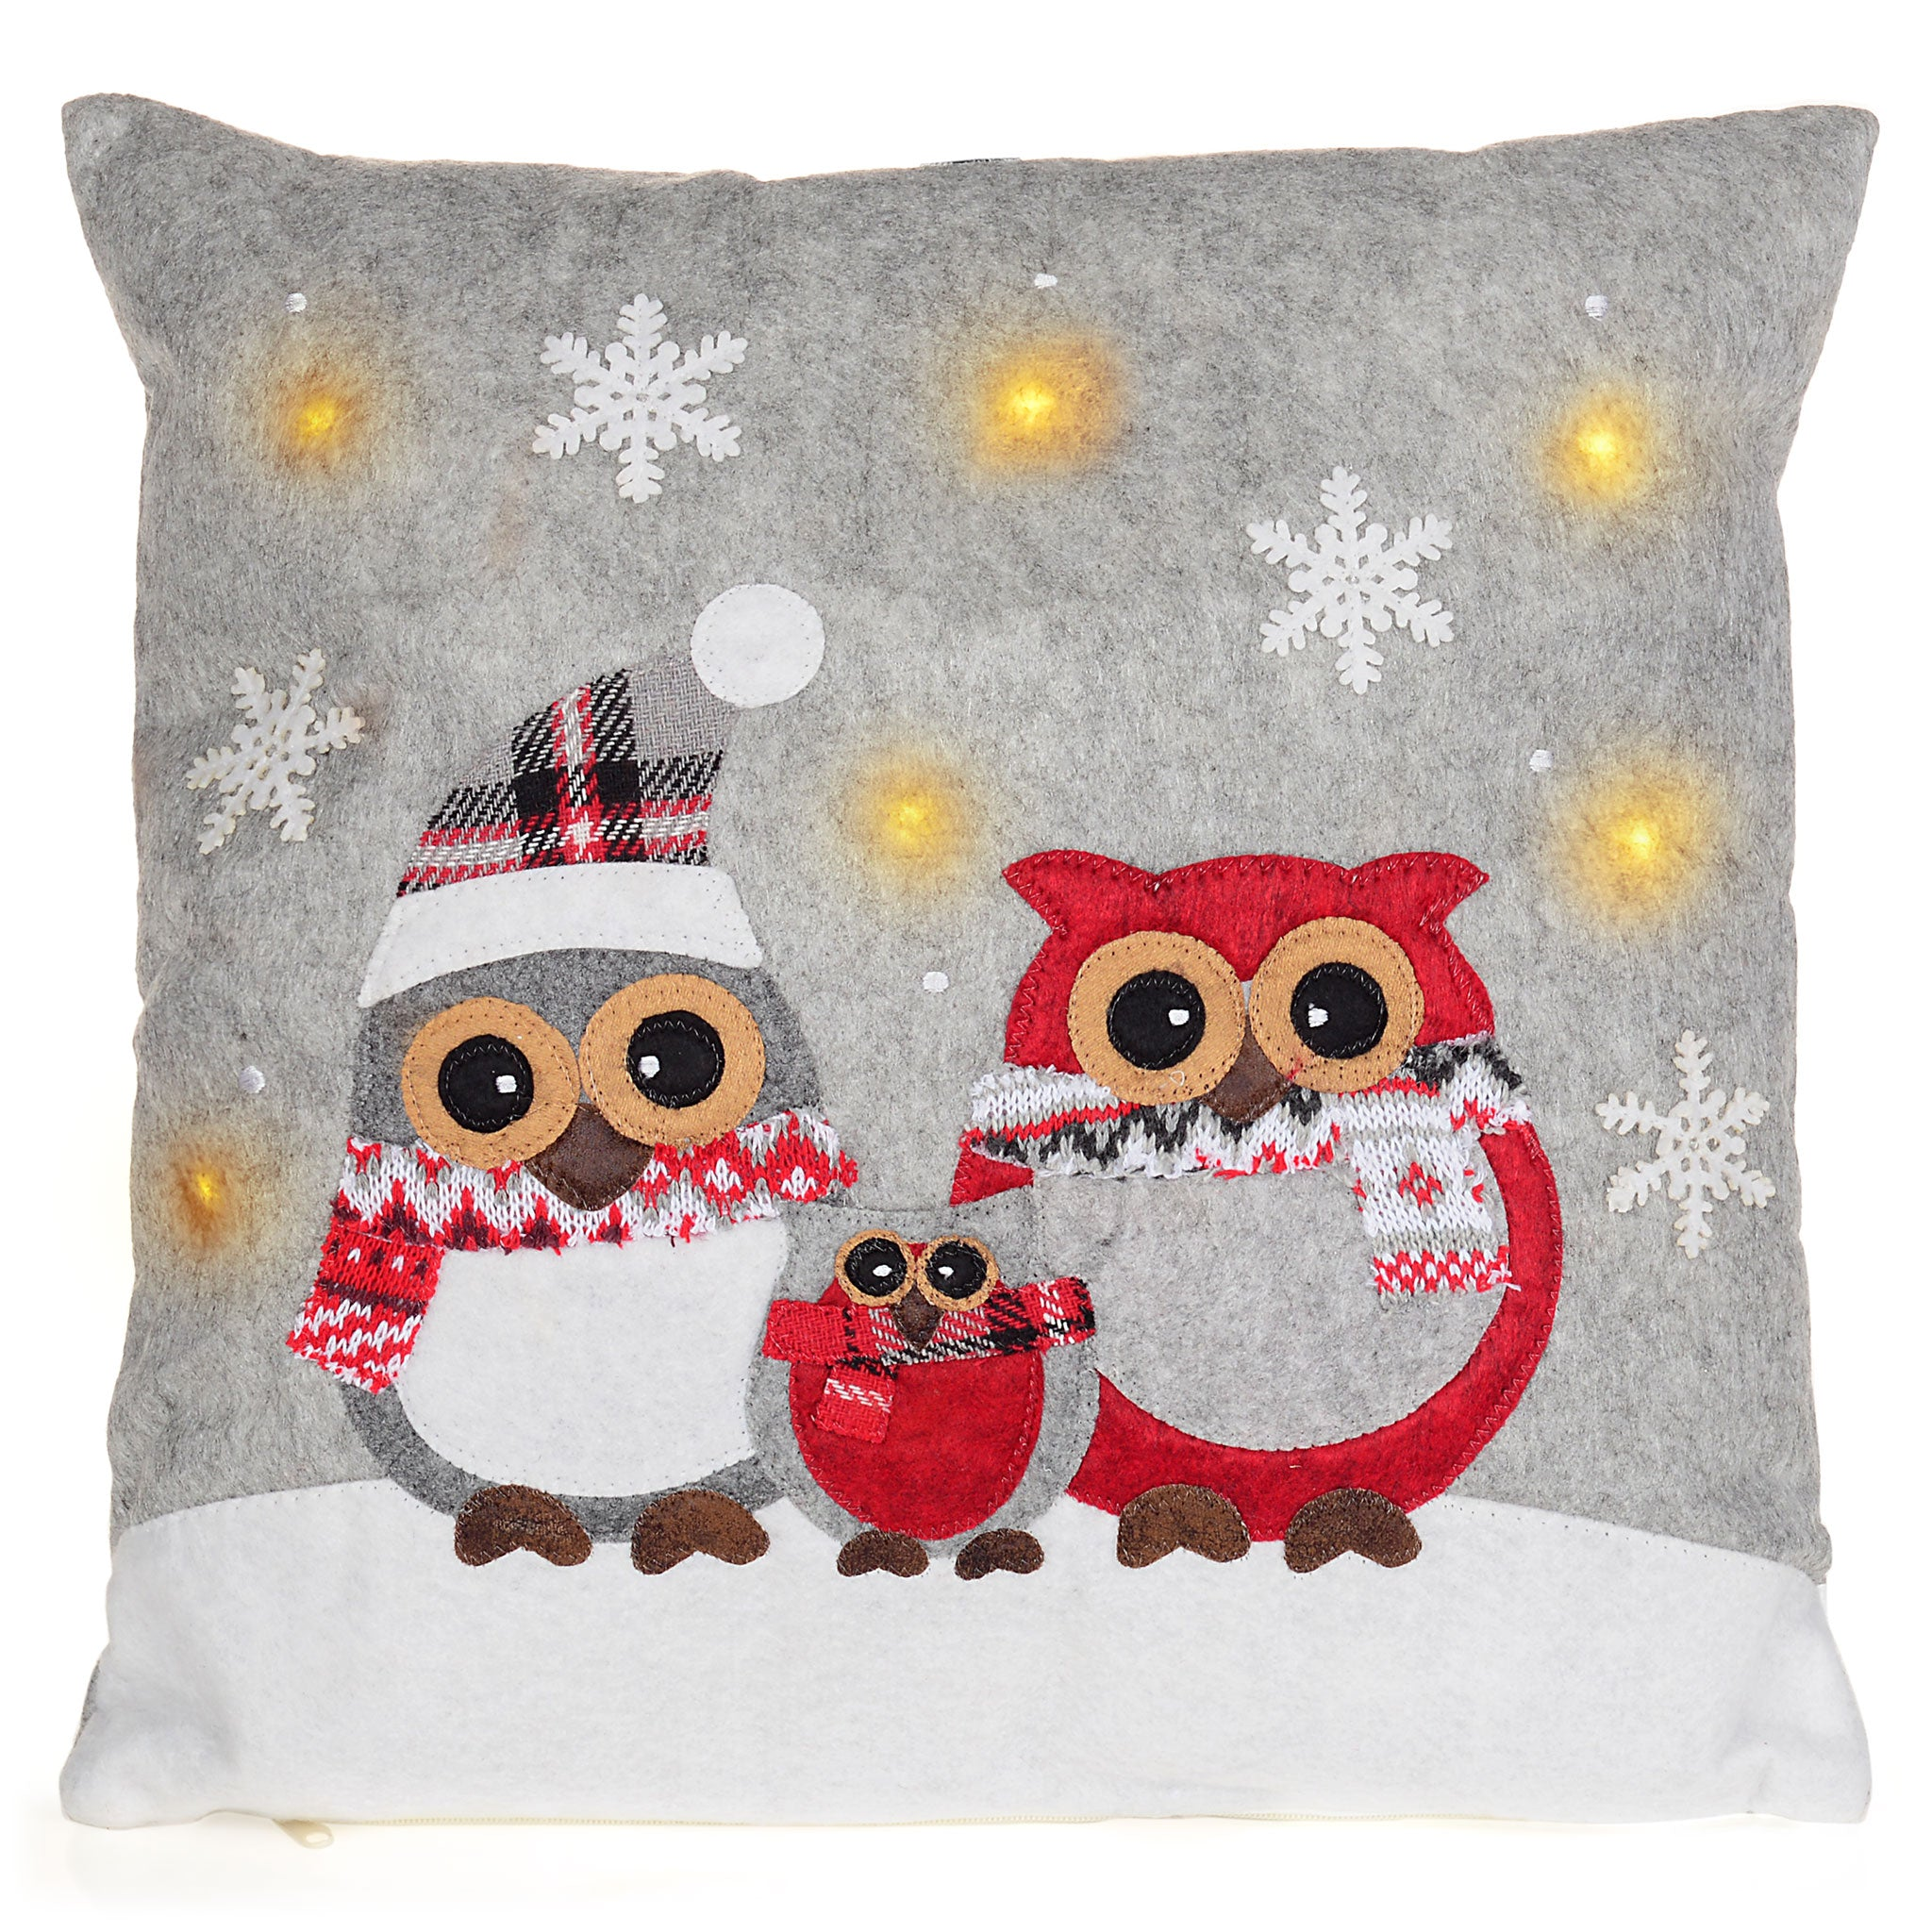 OWLS Perna Decorativa 37x37 cu LED-uri